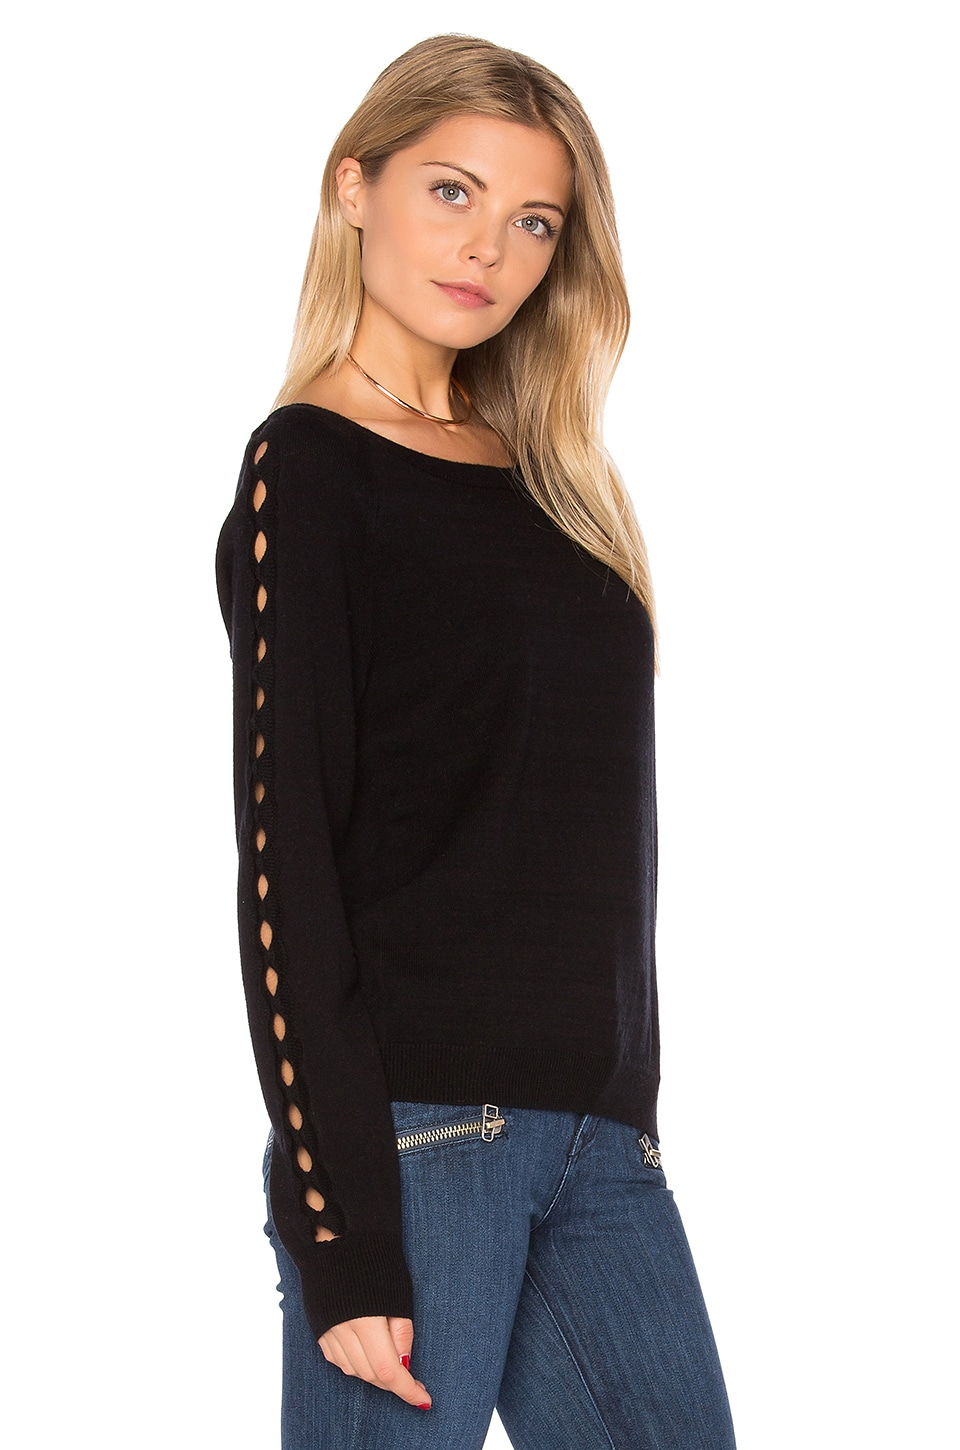 Benson Cut Out Sweater by One Grey Day